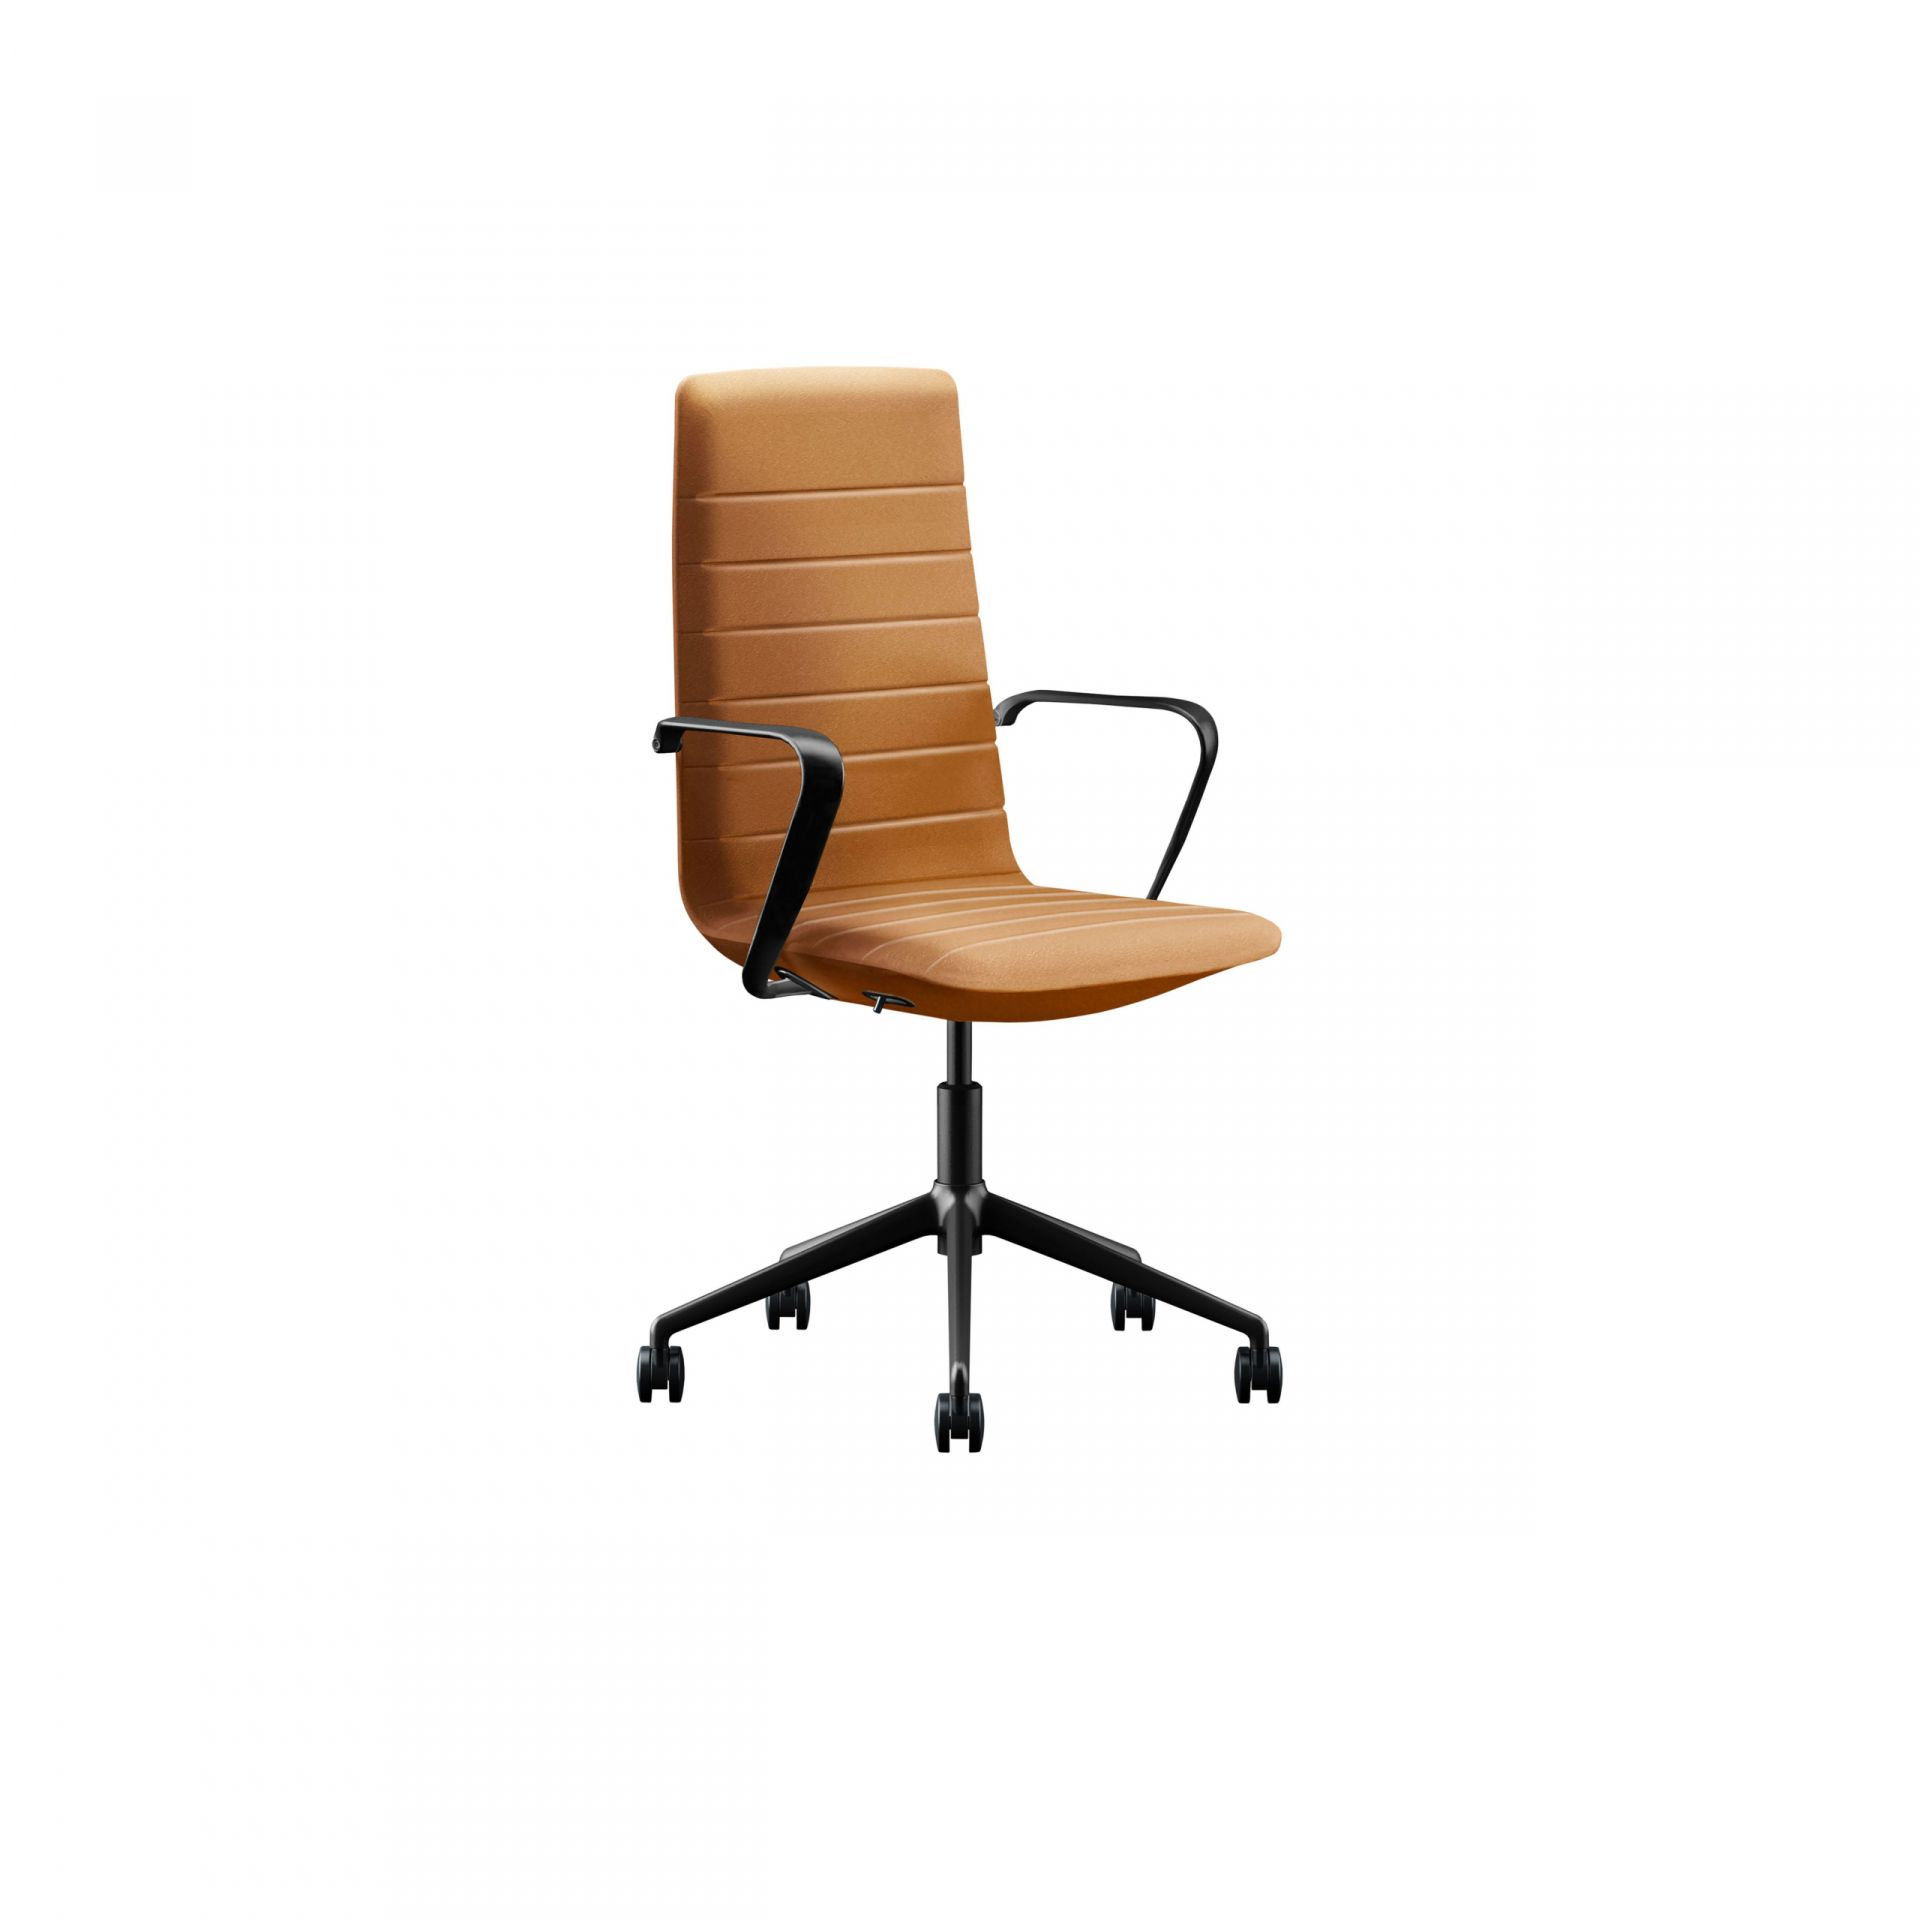 Favor Chair with swivel base product image 1